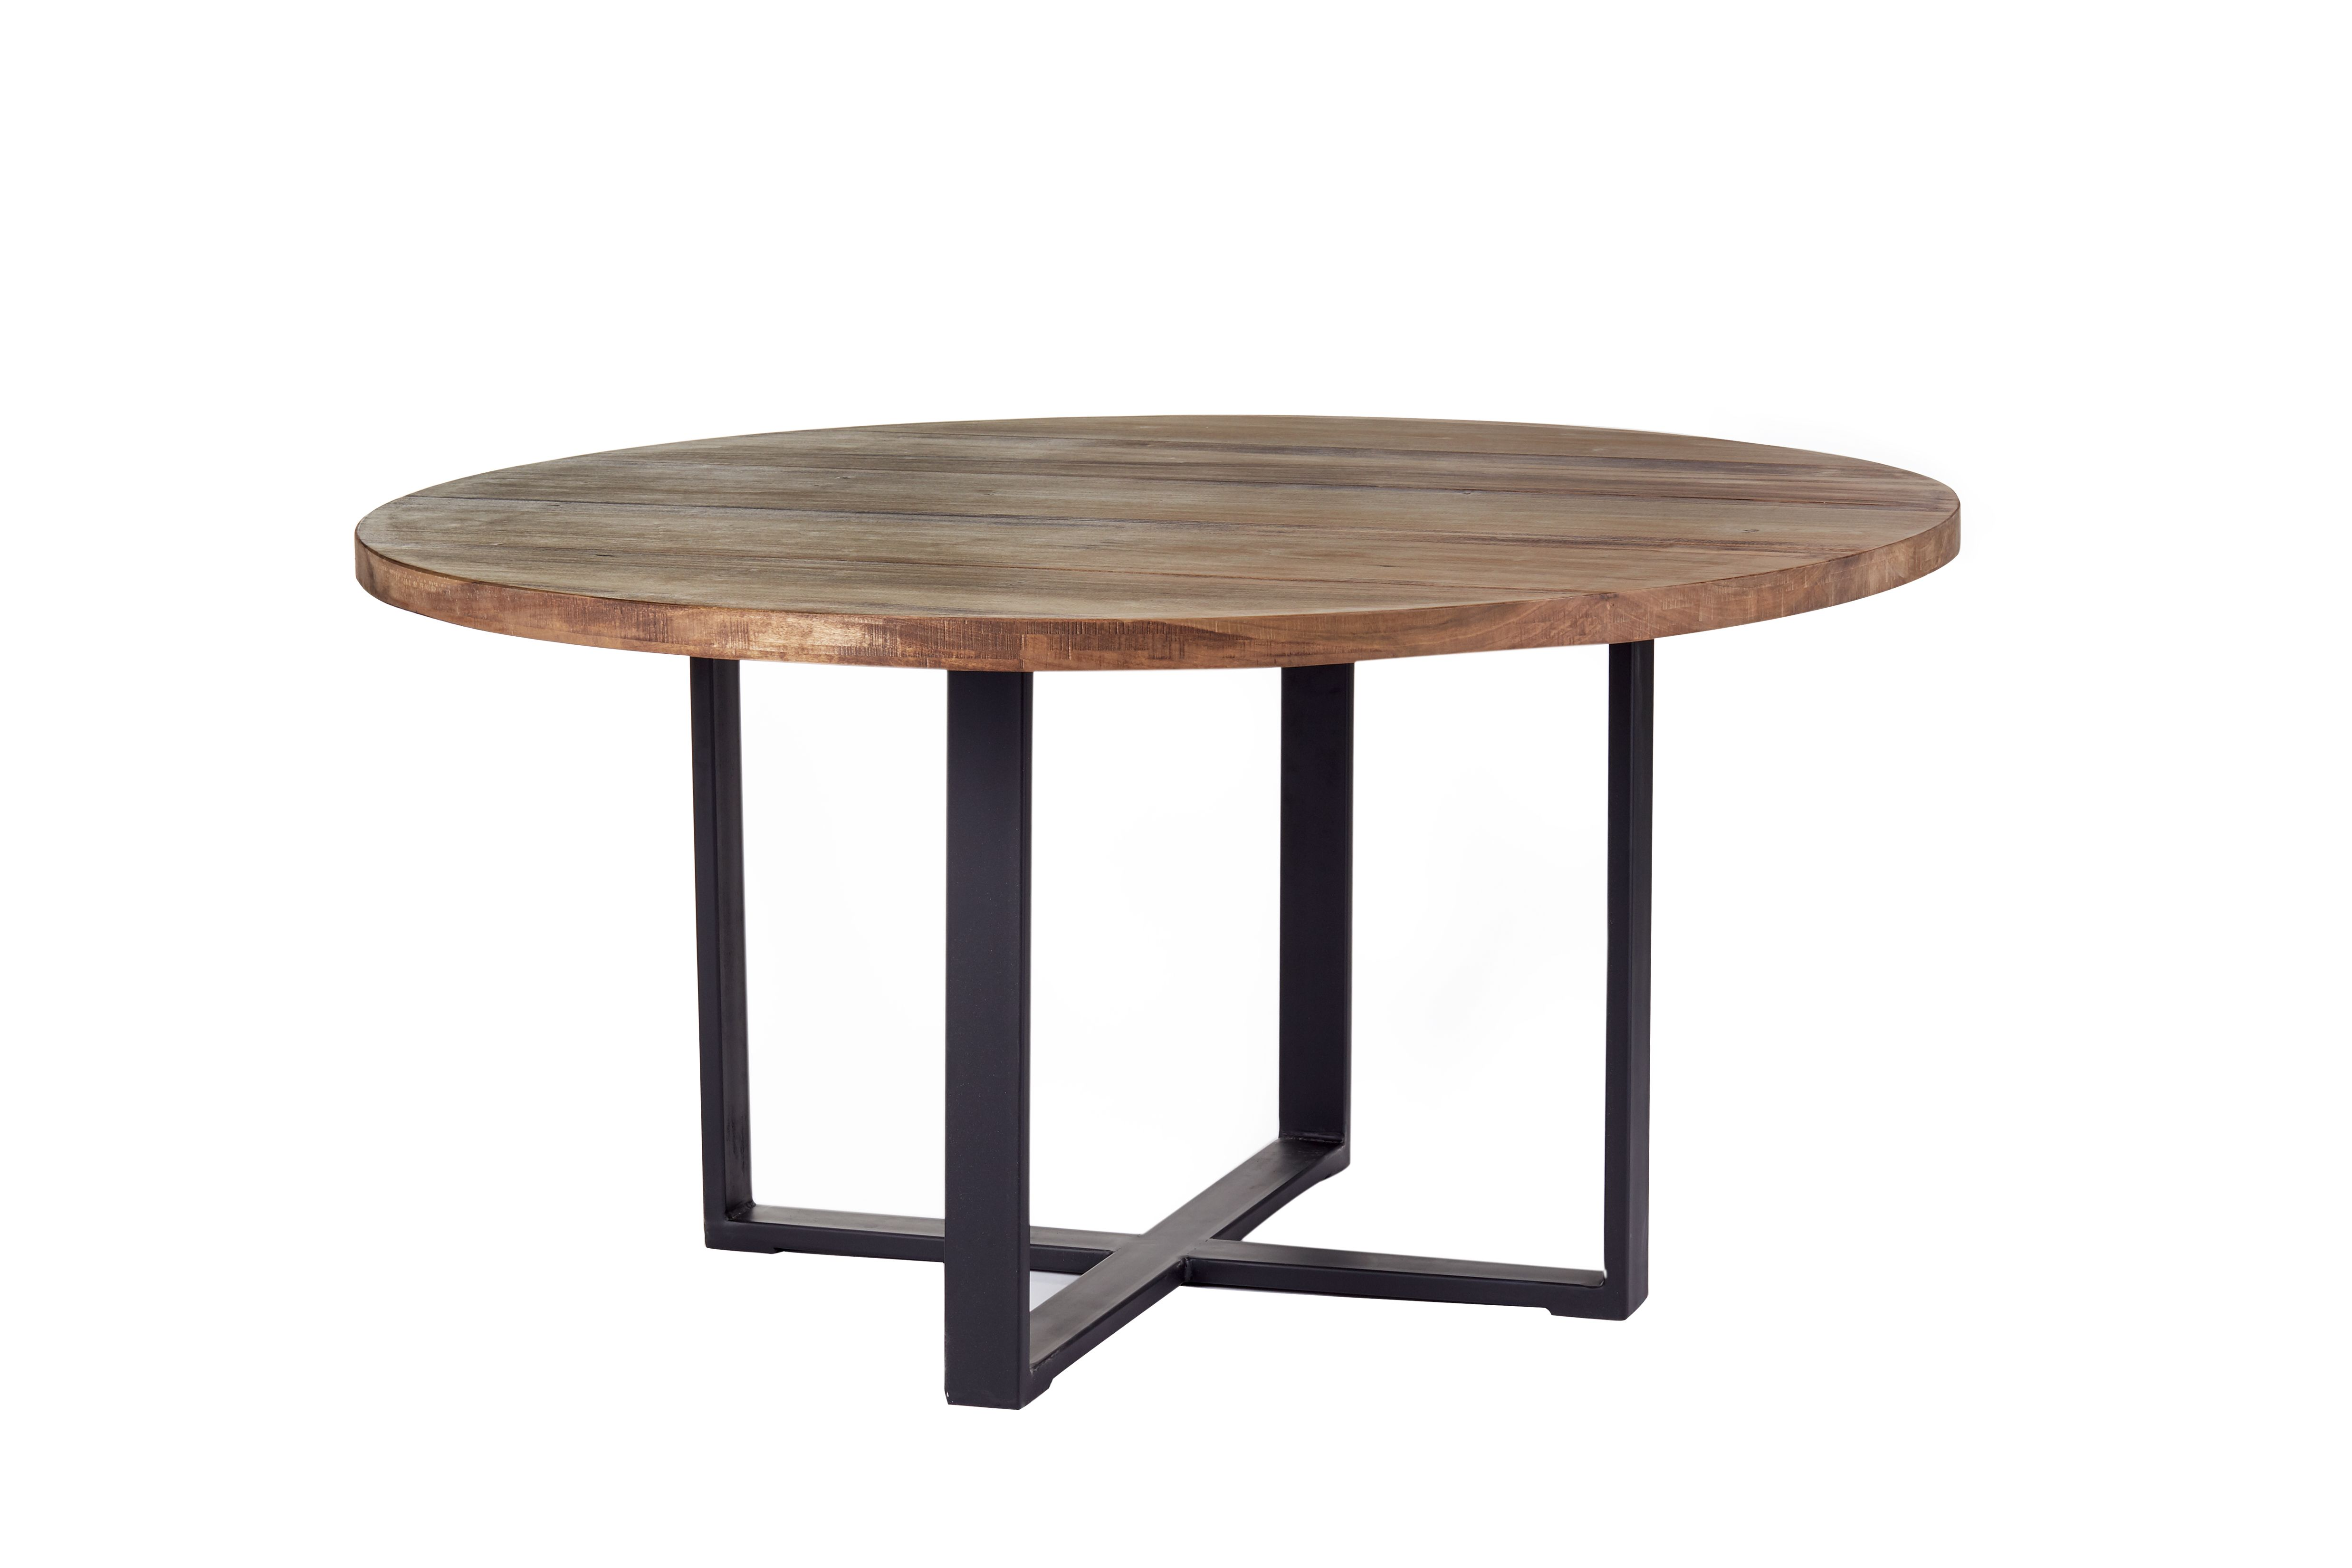 custom industrial modern round dining table rustic dining table